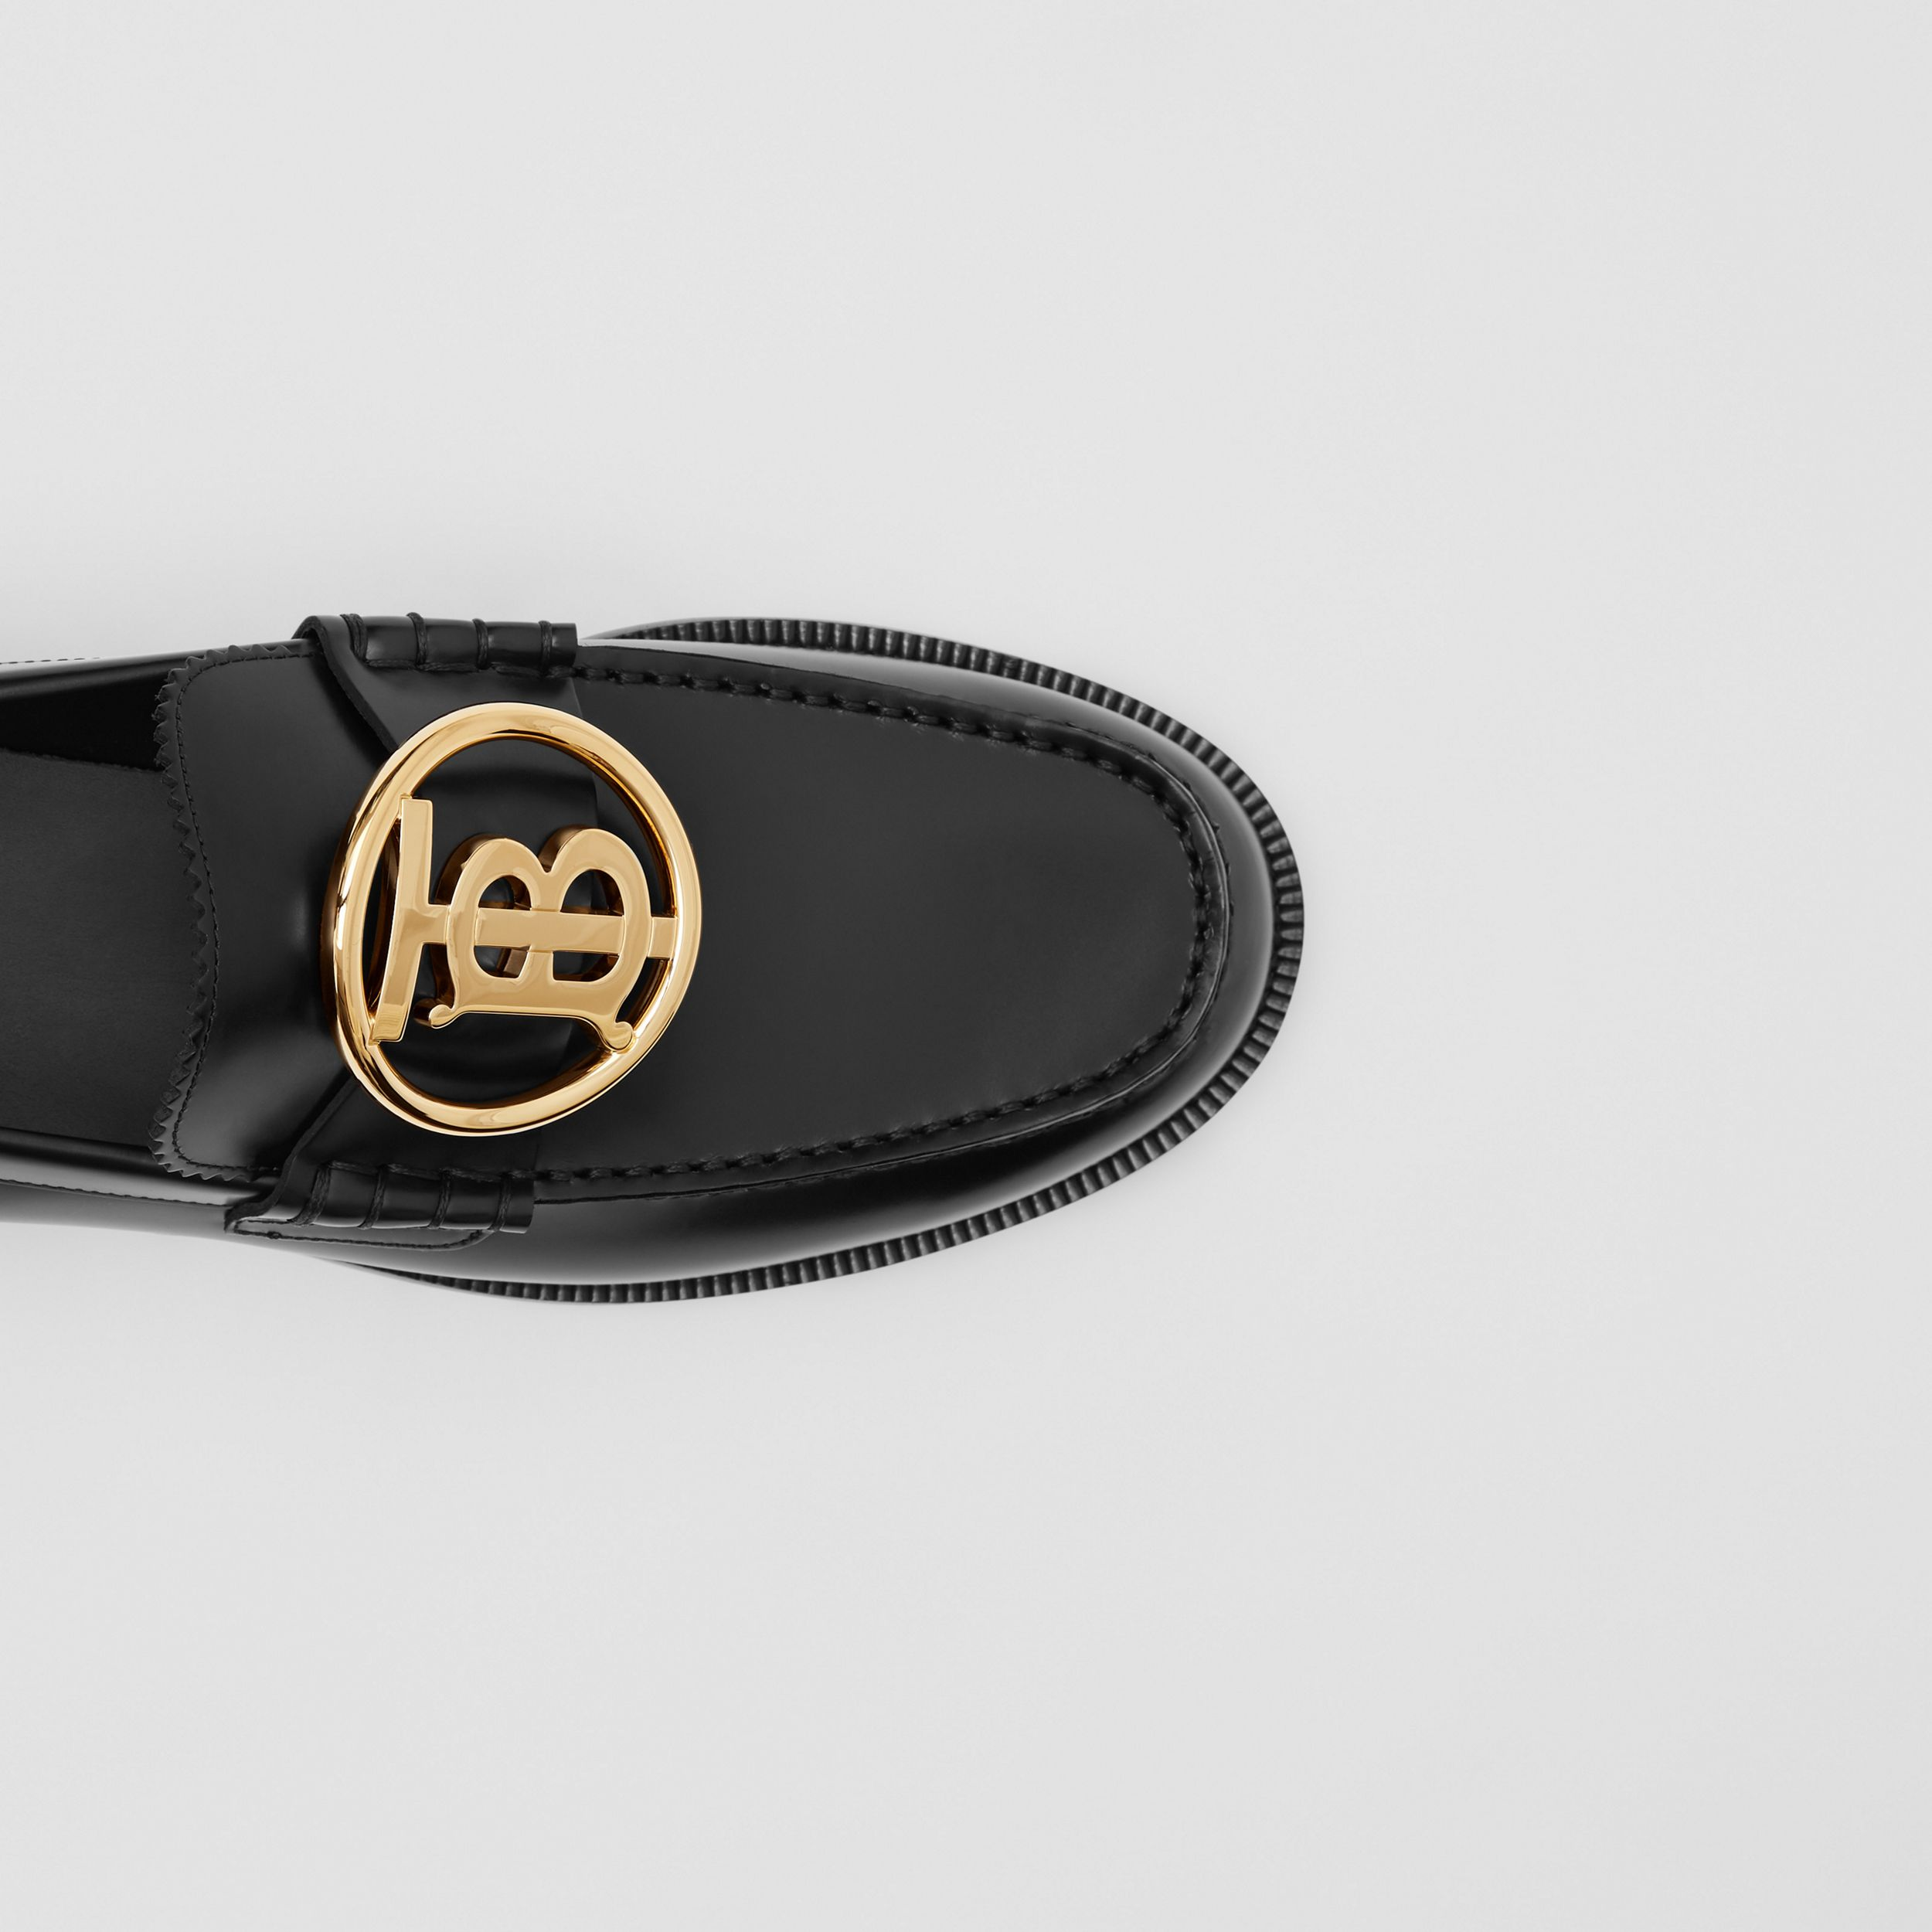 Monogram Motif Leather Loafers in Black - Men | Burberry Canada - 2